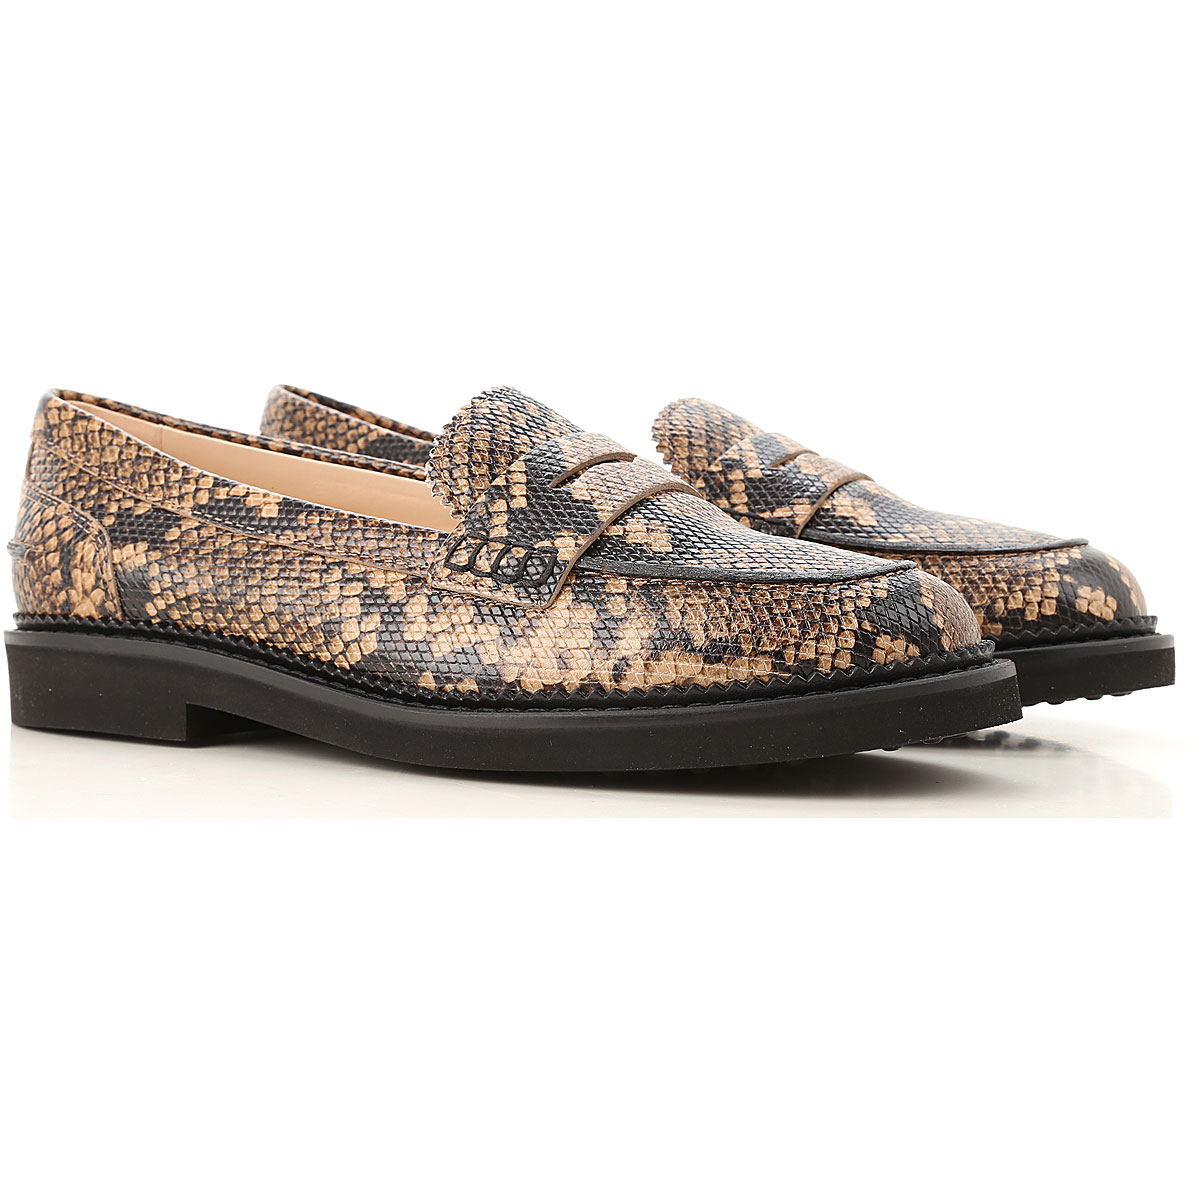 Tods Loafers for Women Light Clay USA - GOOFASH